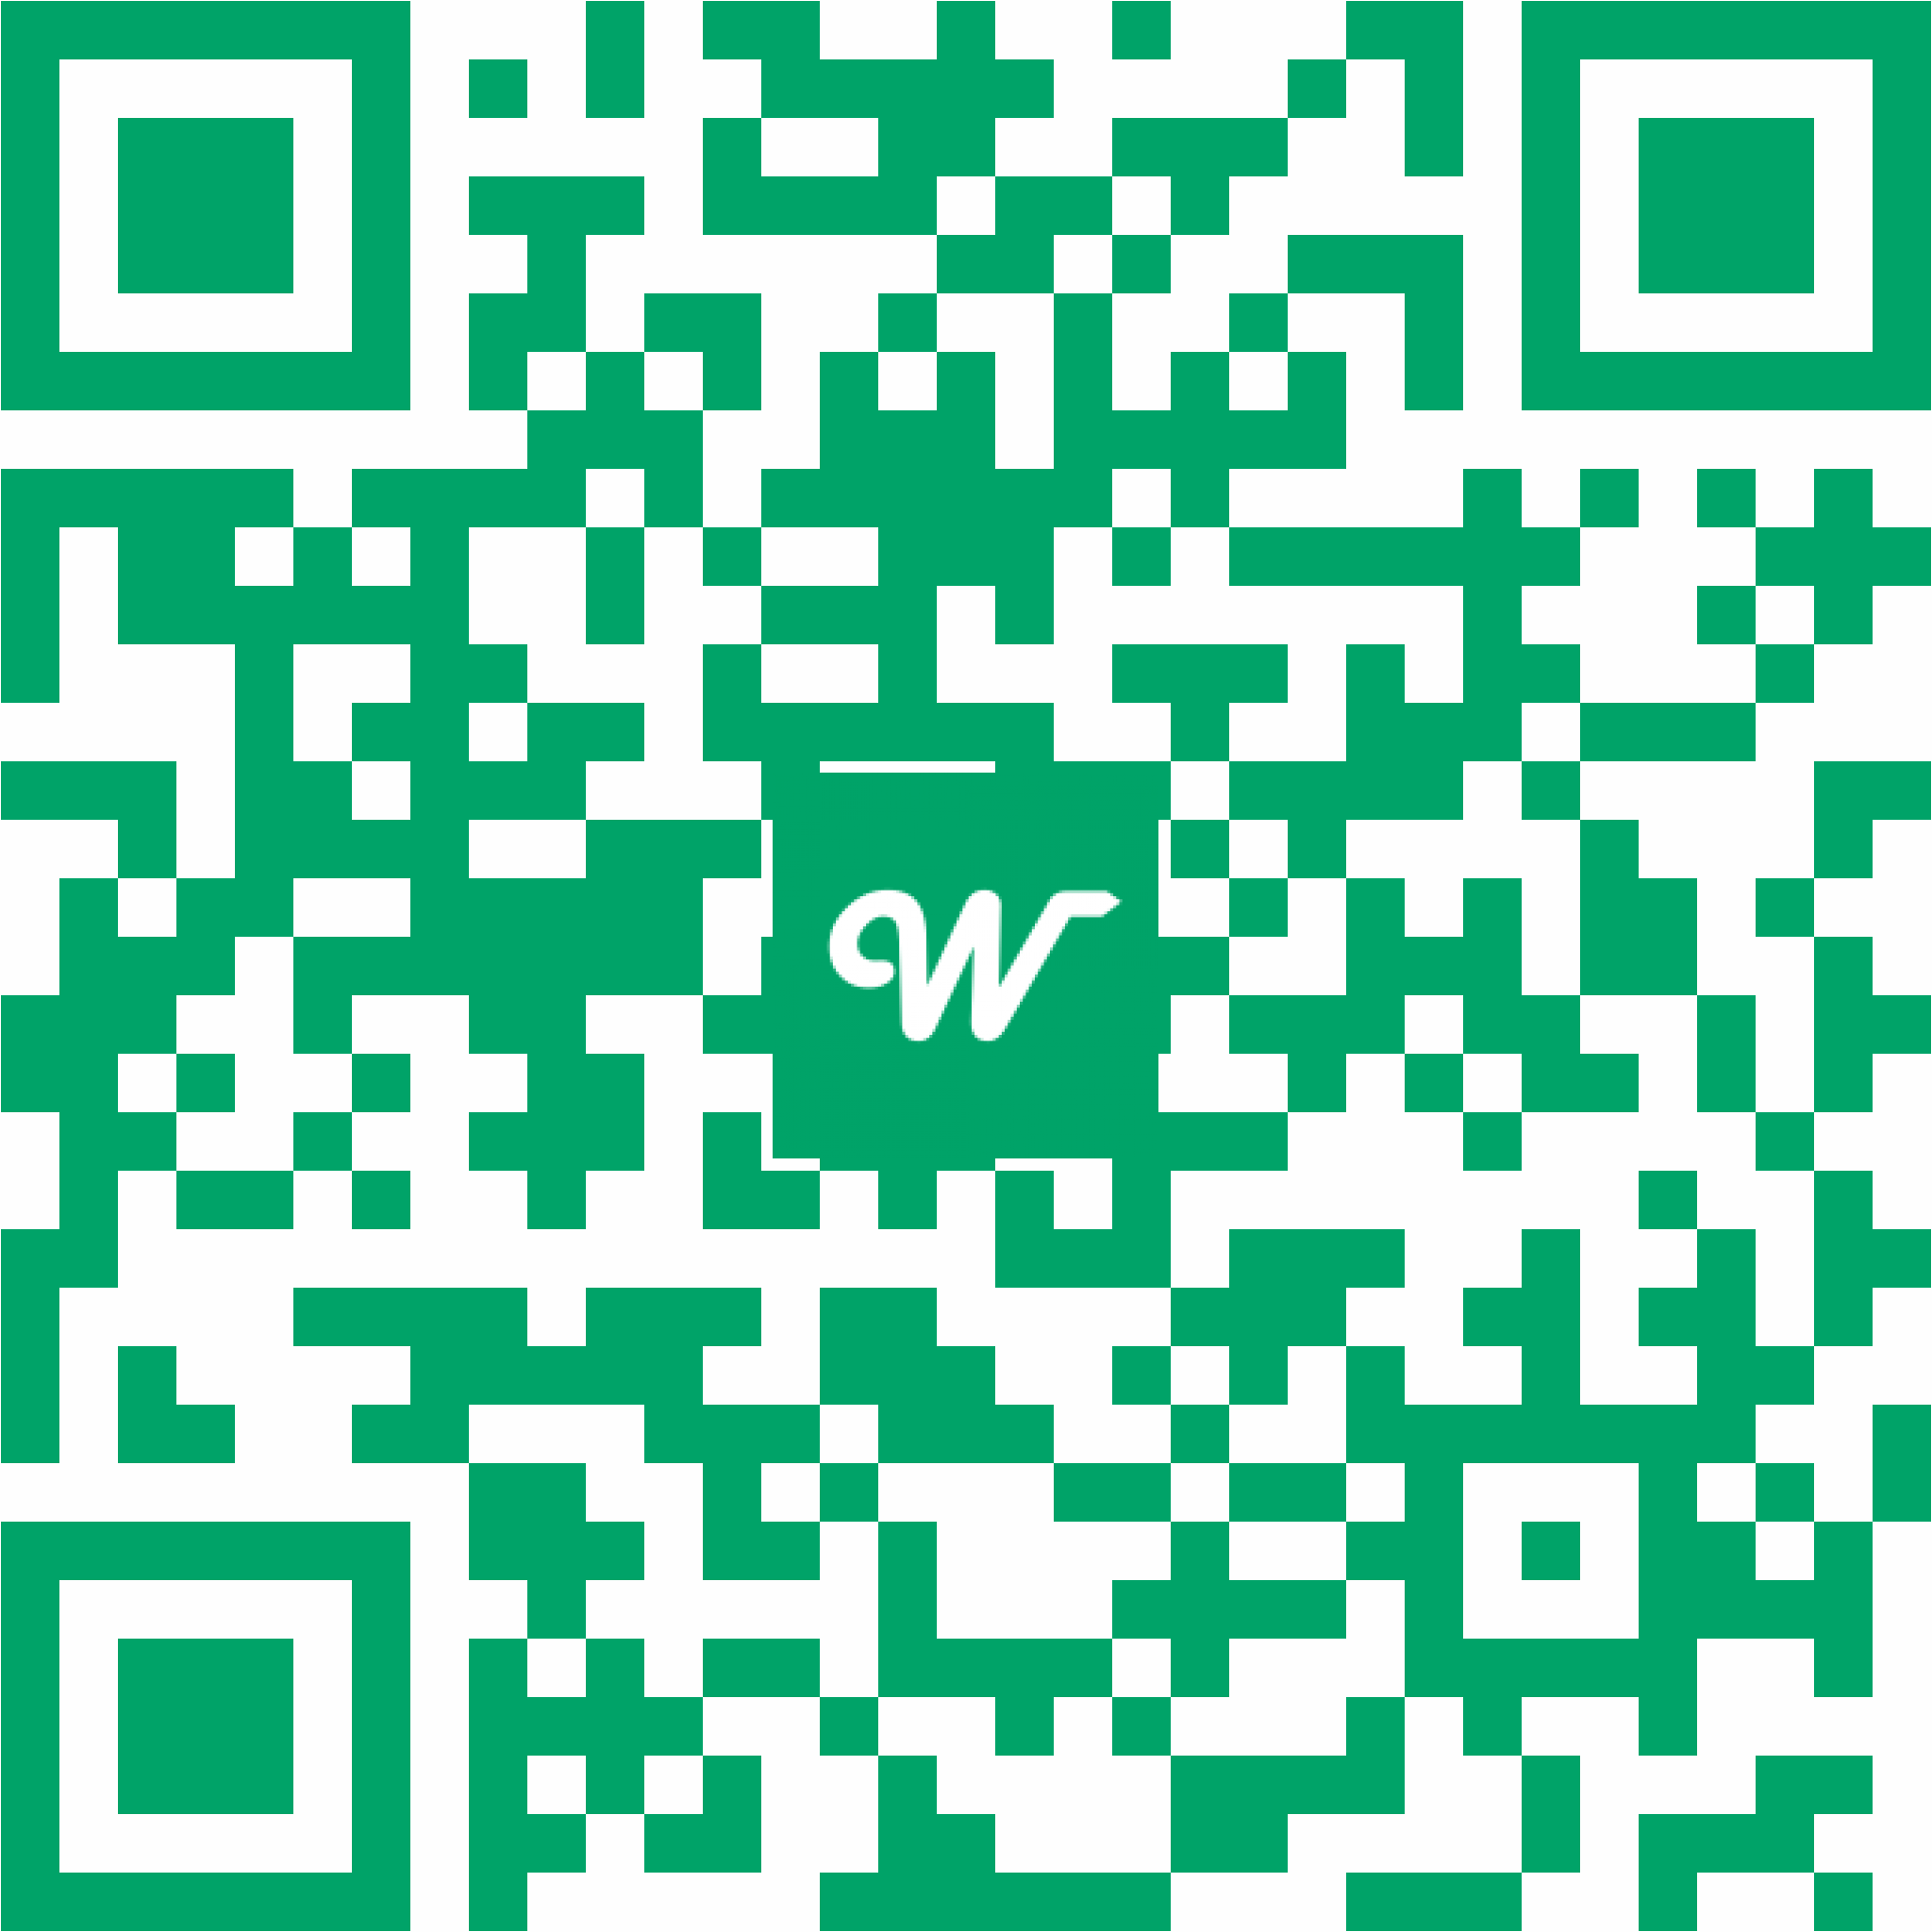 Printable QR code for 404 Tenafly Rd